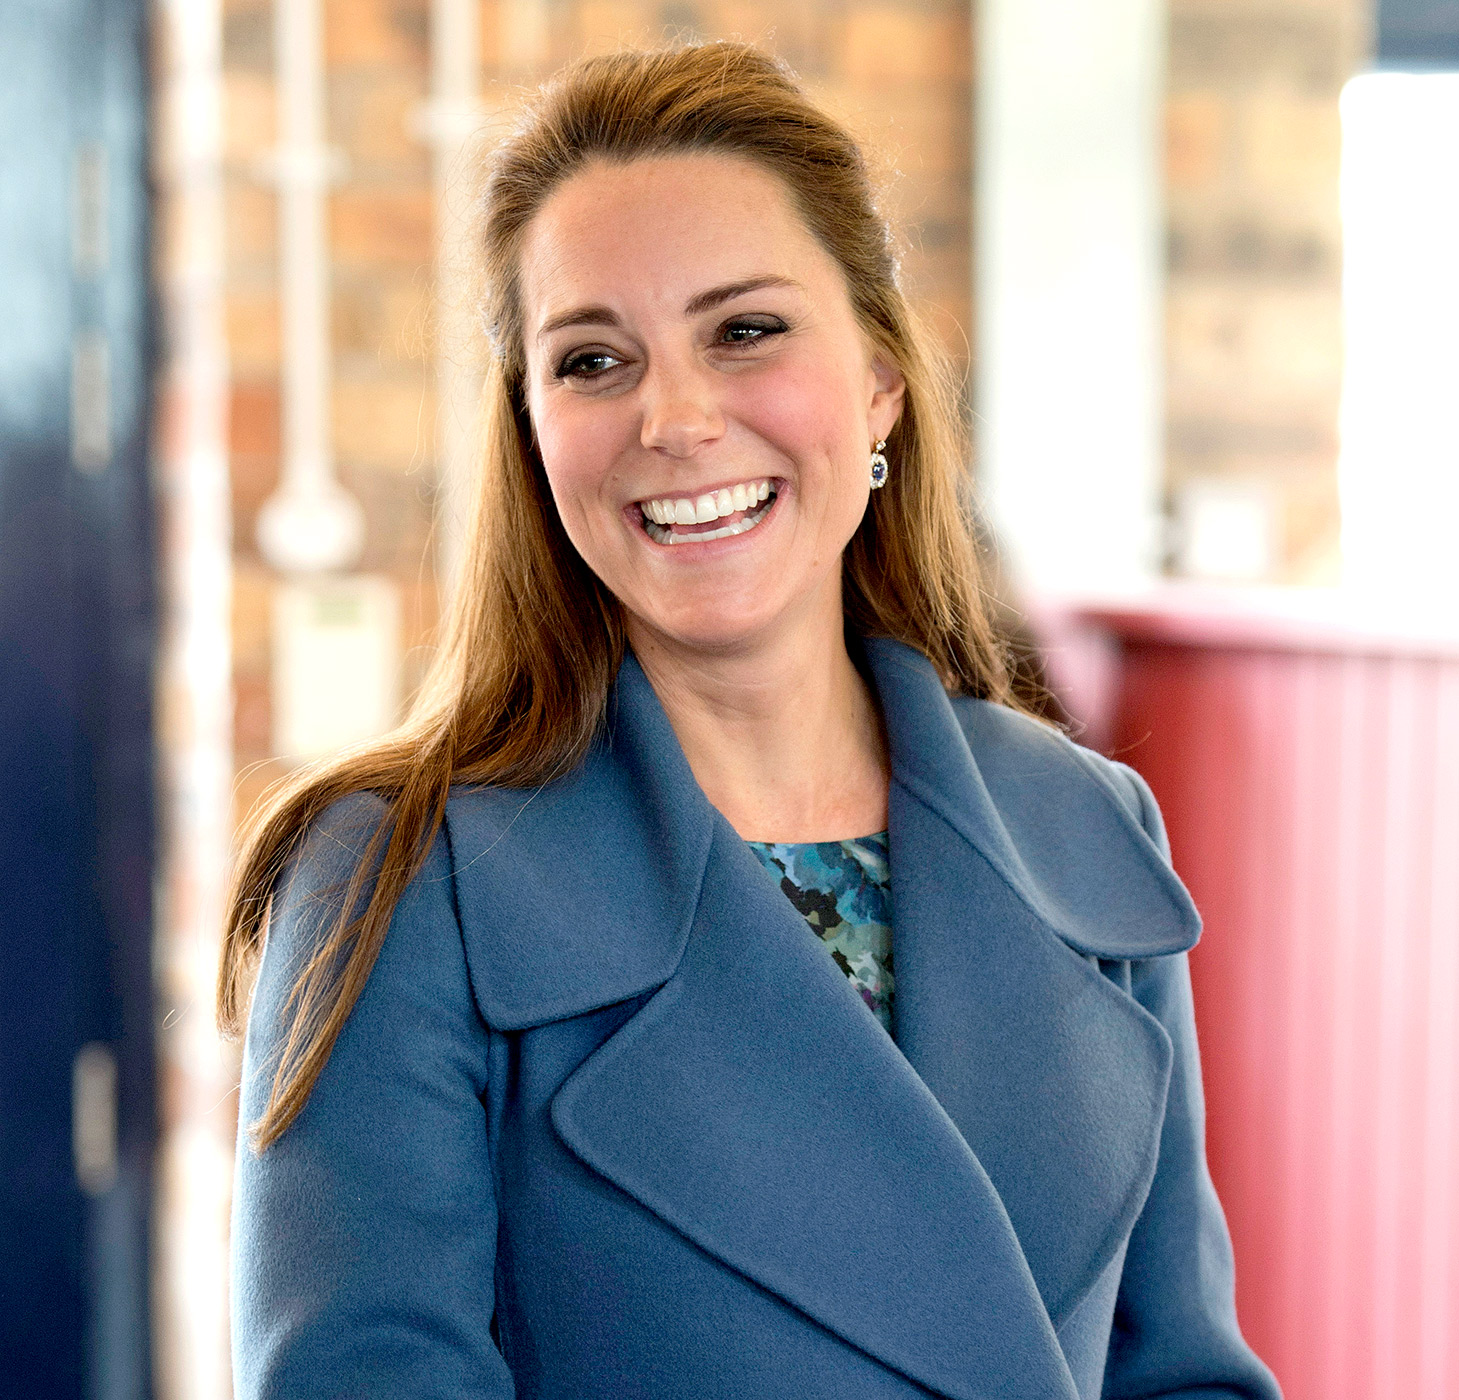 Kate Middleton Cheerful Smile 175.81 Kb